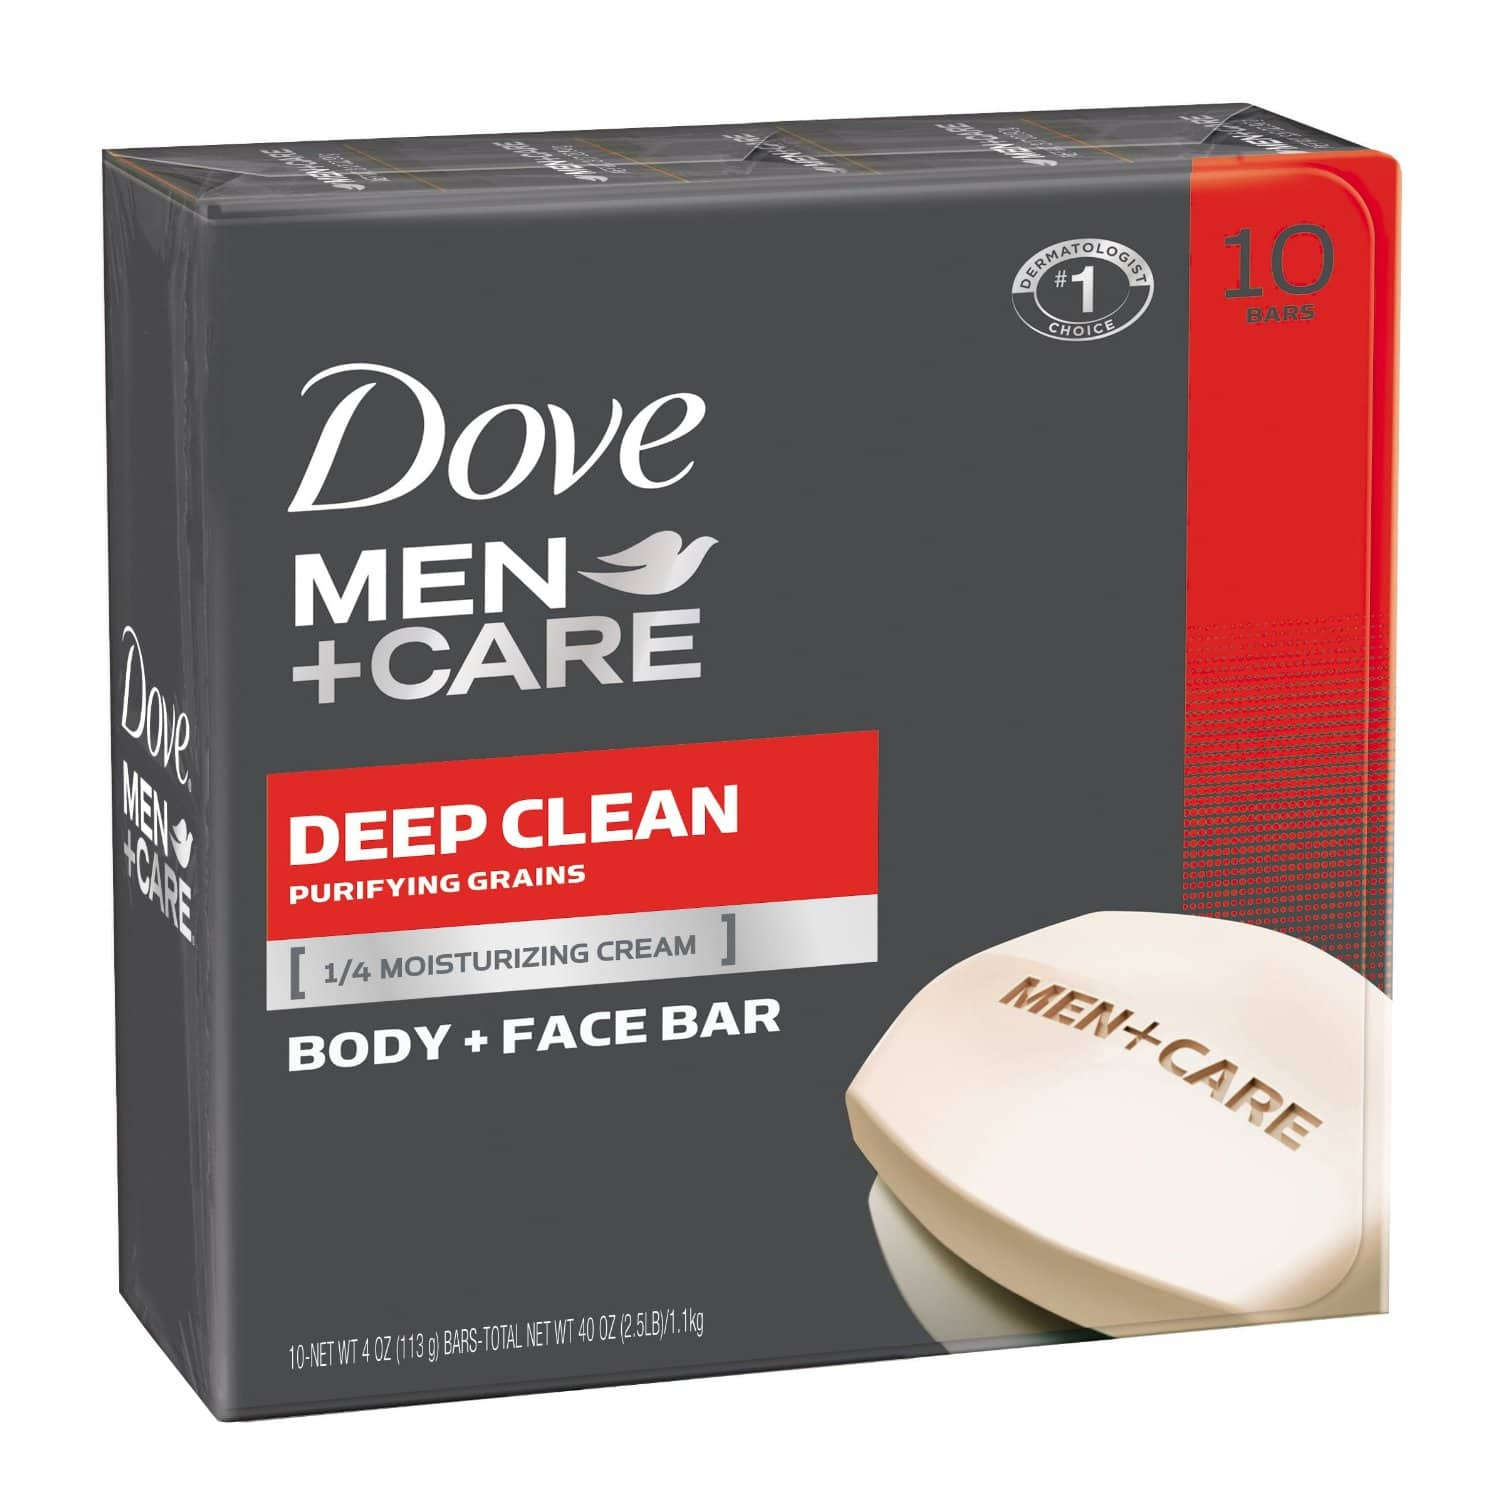 10-Ct Dove Men+Care Body/Face Bar (Deep Clean or Extra Fresh)  8.15 + Free S/H